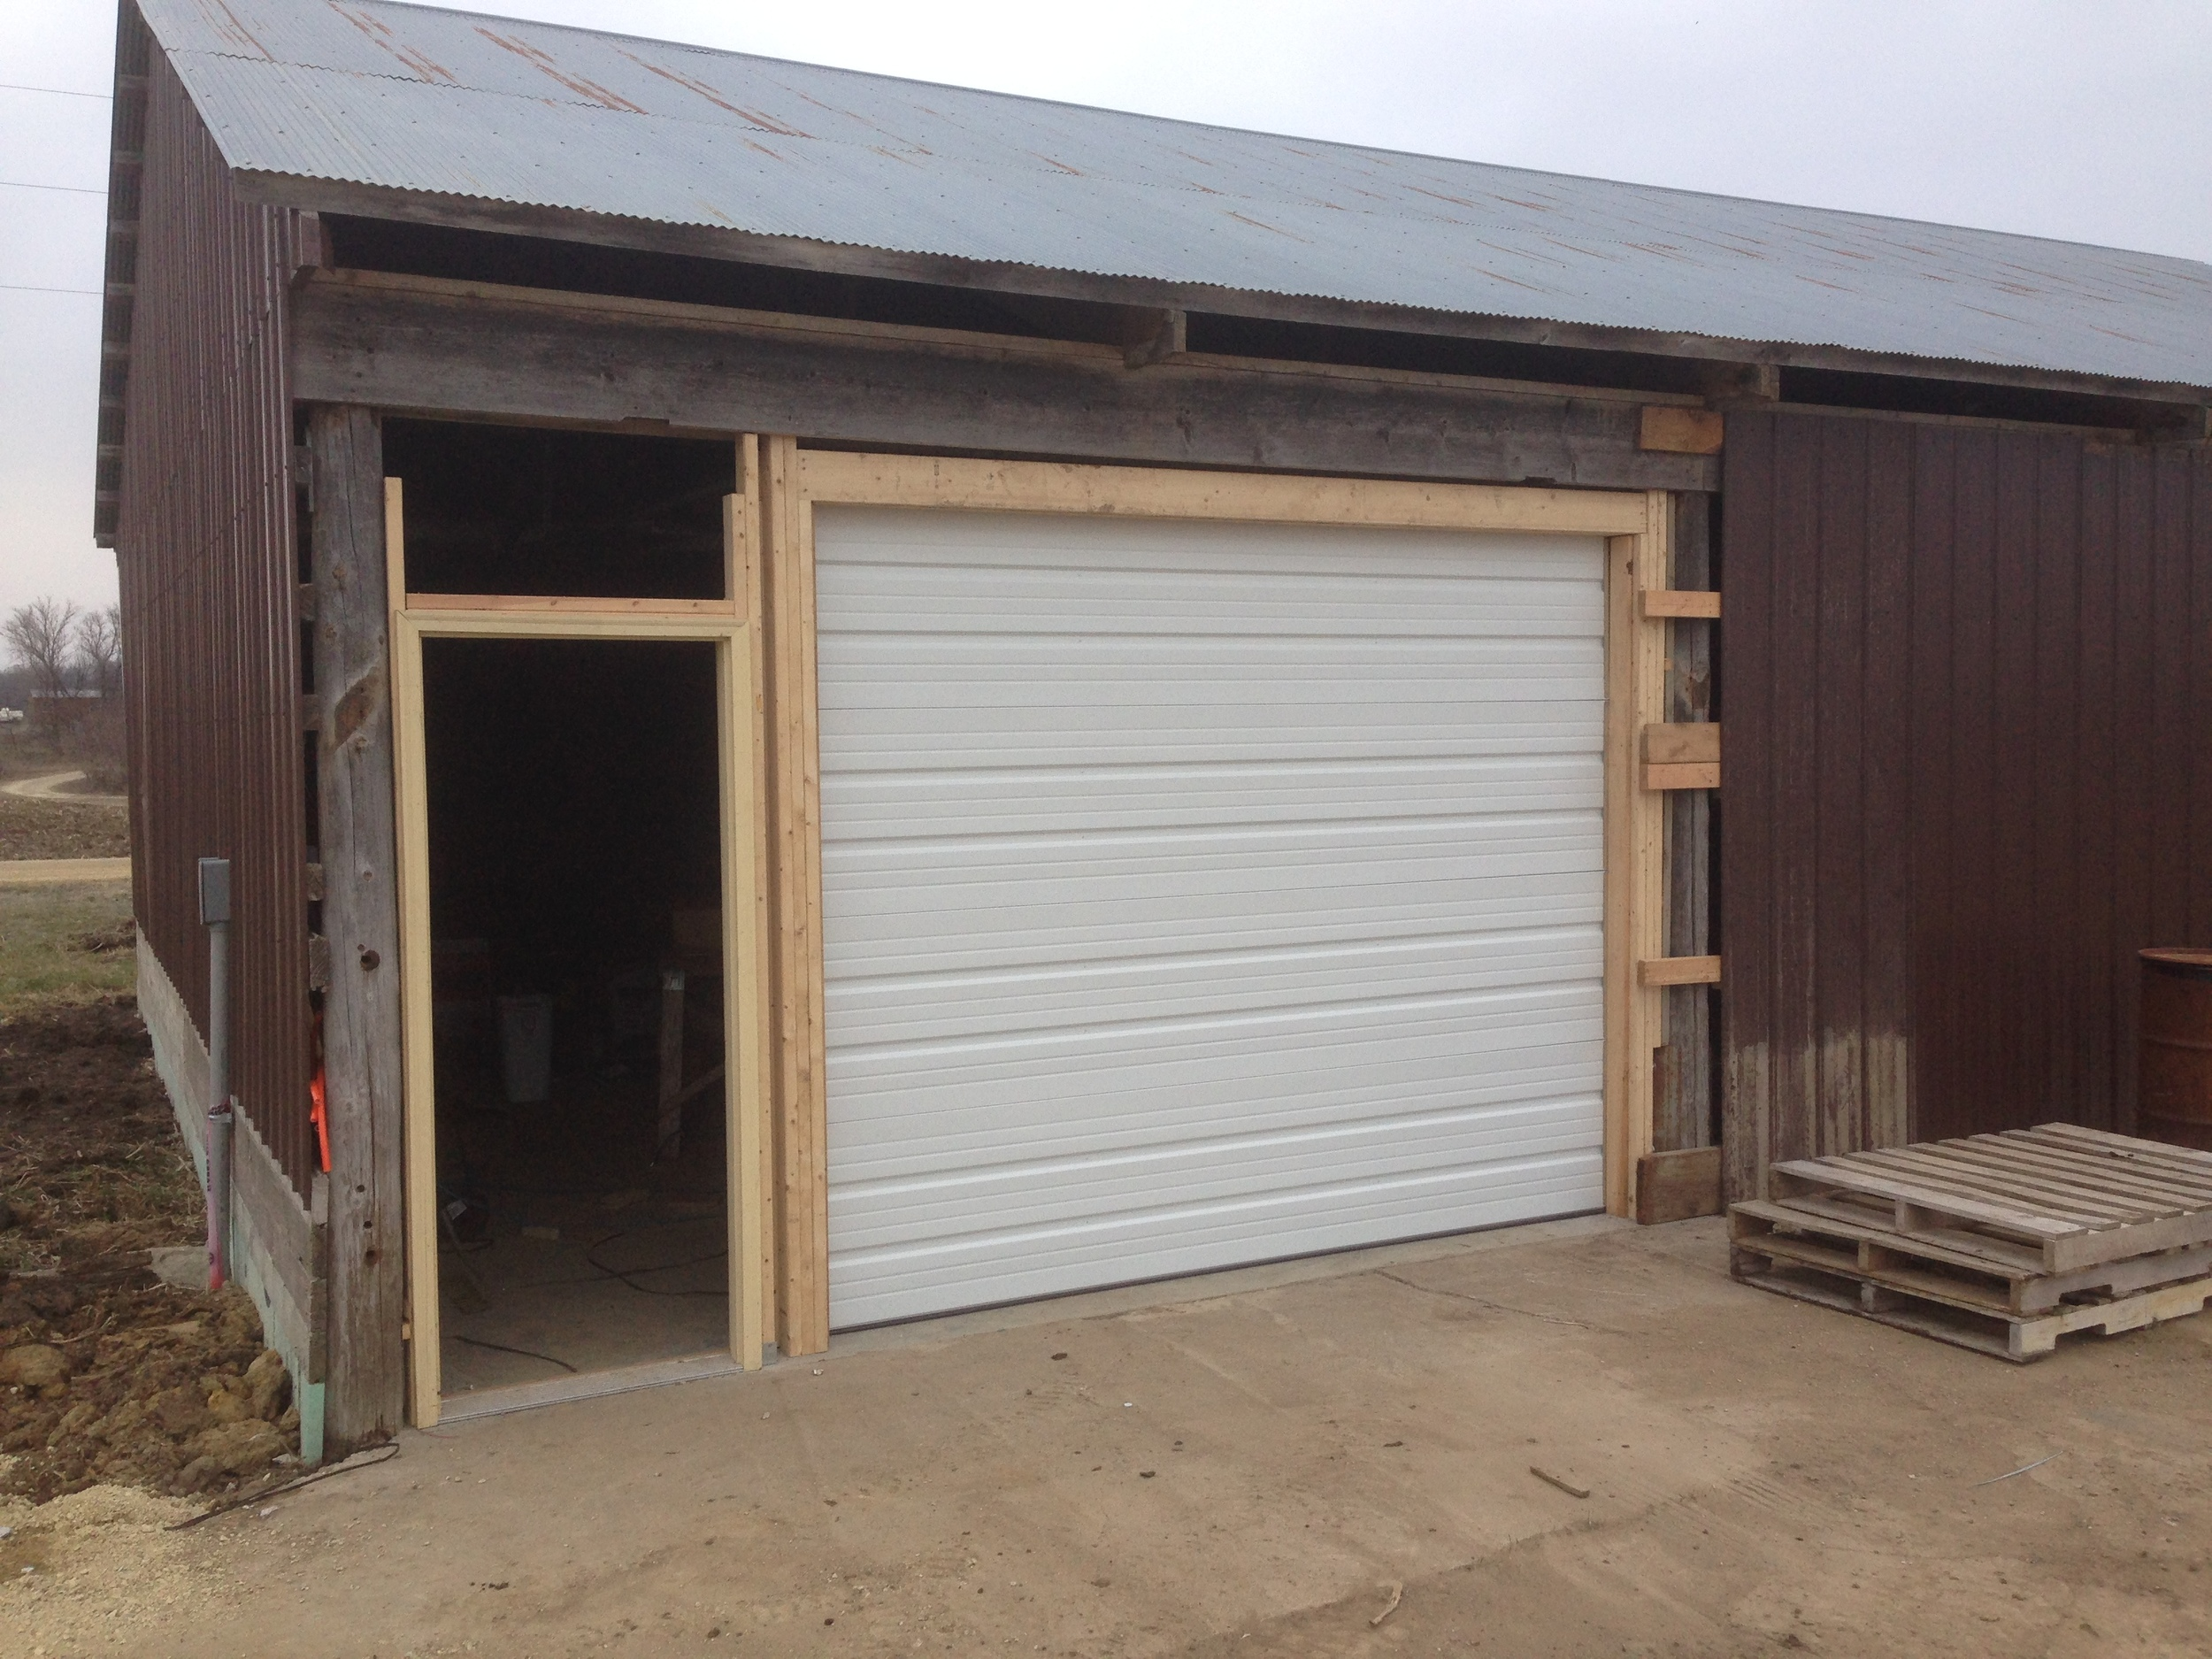 Overhead door is done and entry door frame in place. Next steps are to install the entry door and finish up the siding.